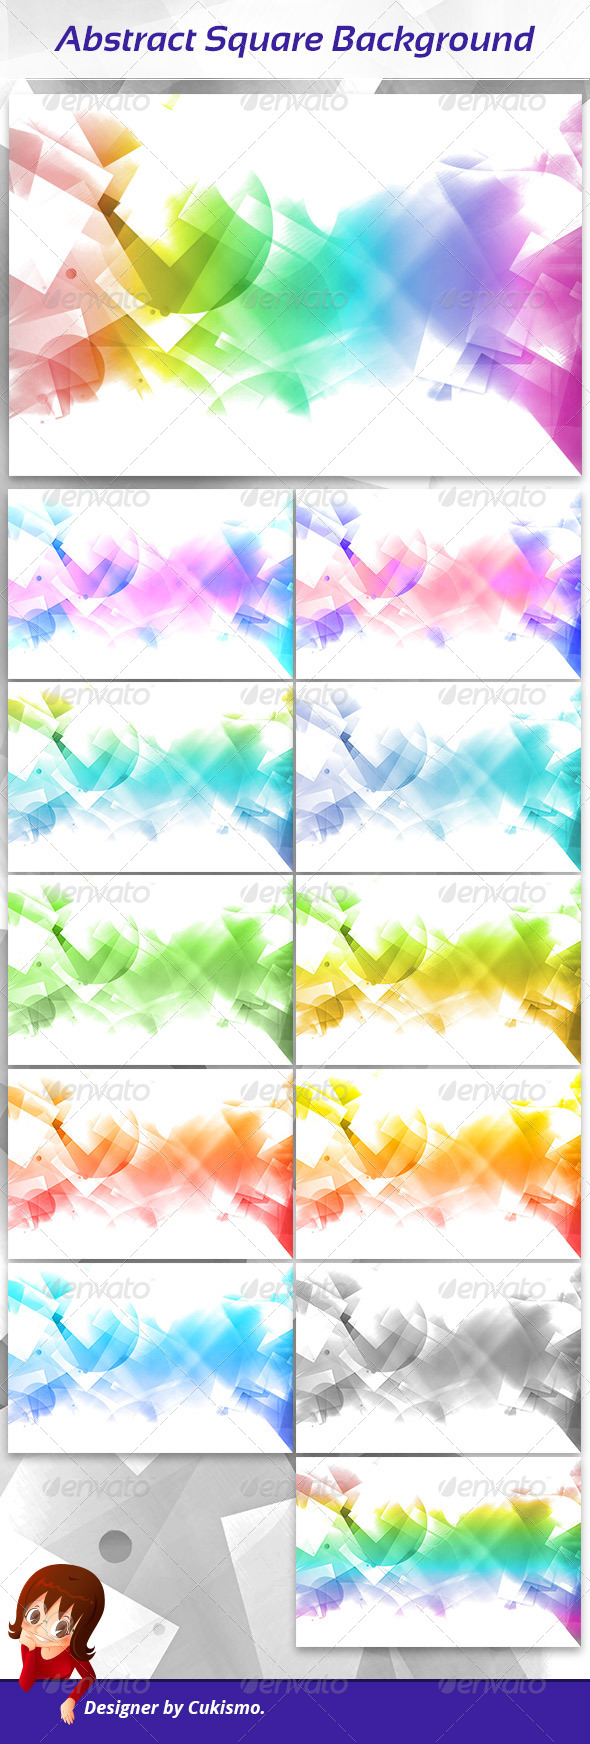 Abstract Square Background - Abstract Backgrounds